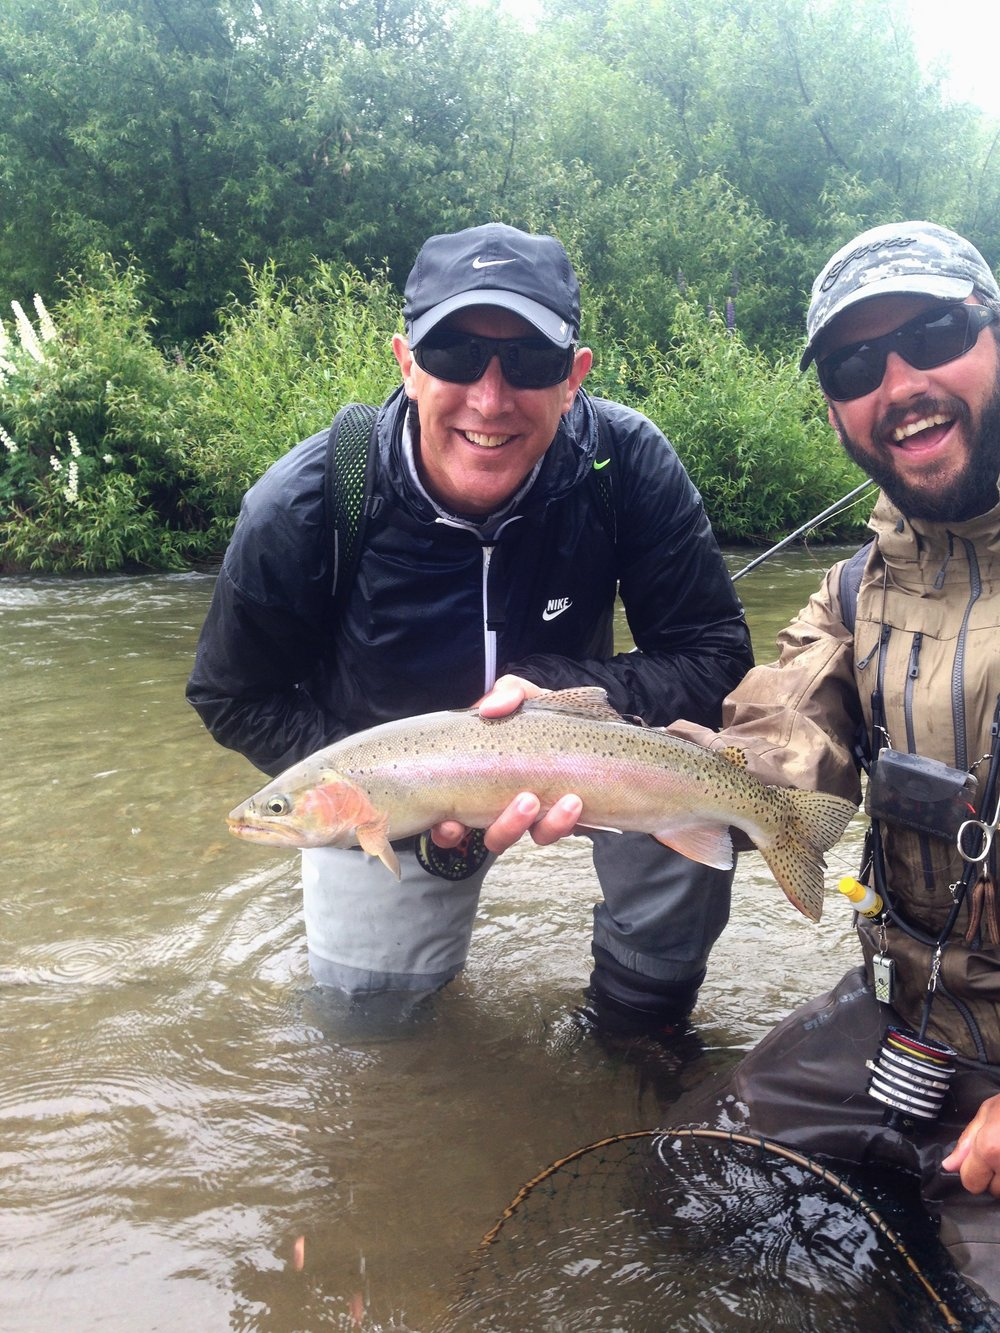 Wanaka fly fishing guide Jeff Forsee